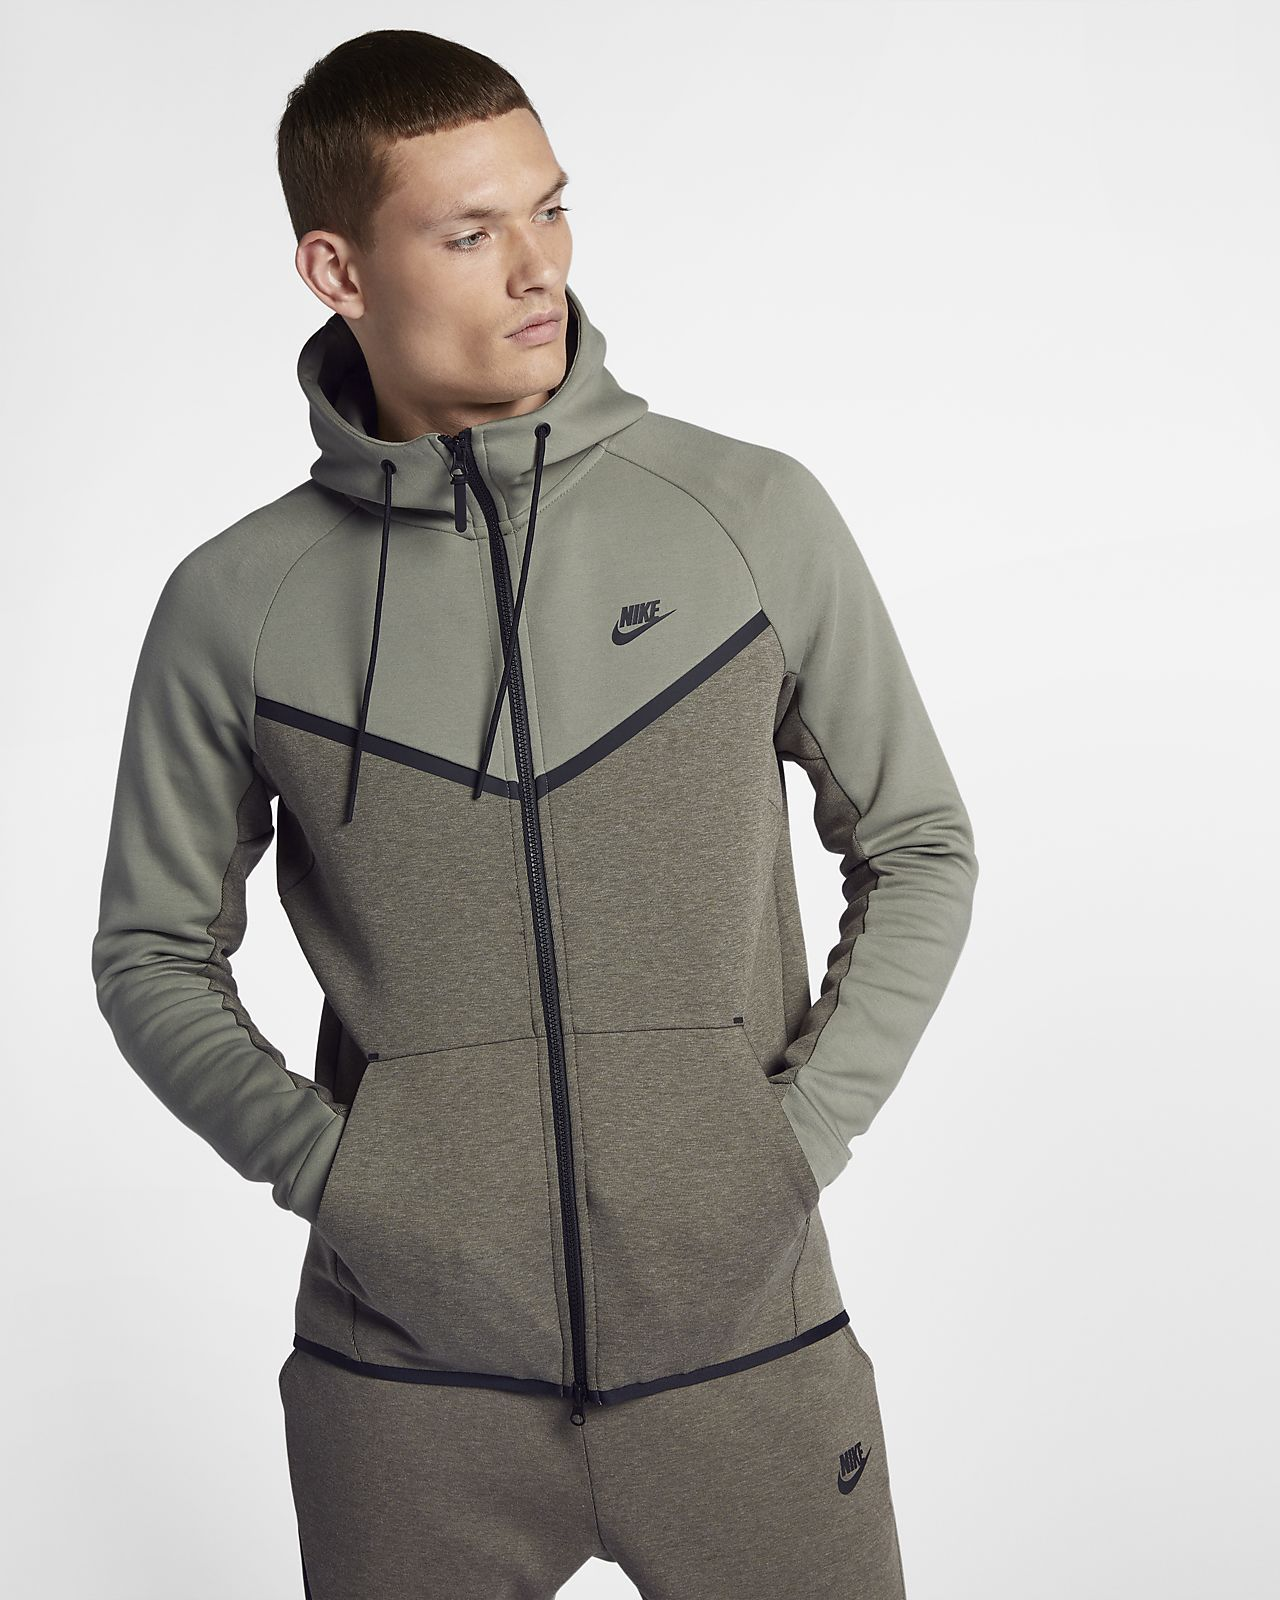 Nike Sportswear Tech Fleece Windrunner Men's FullZip